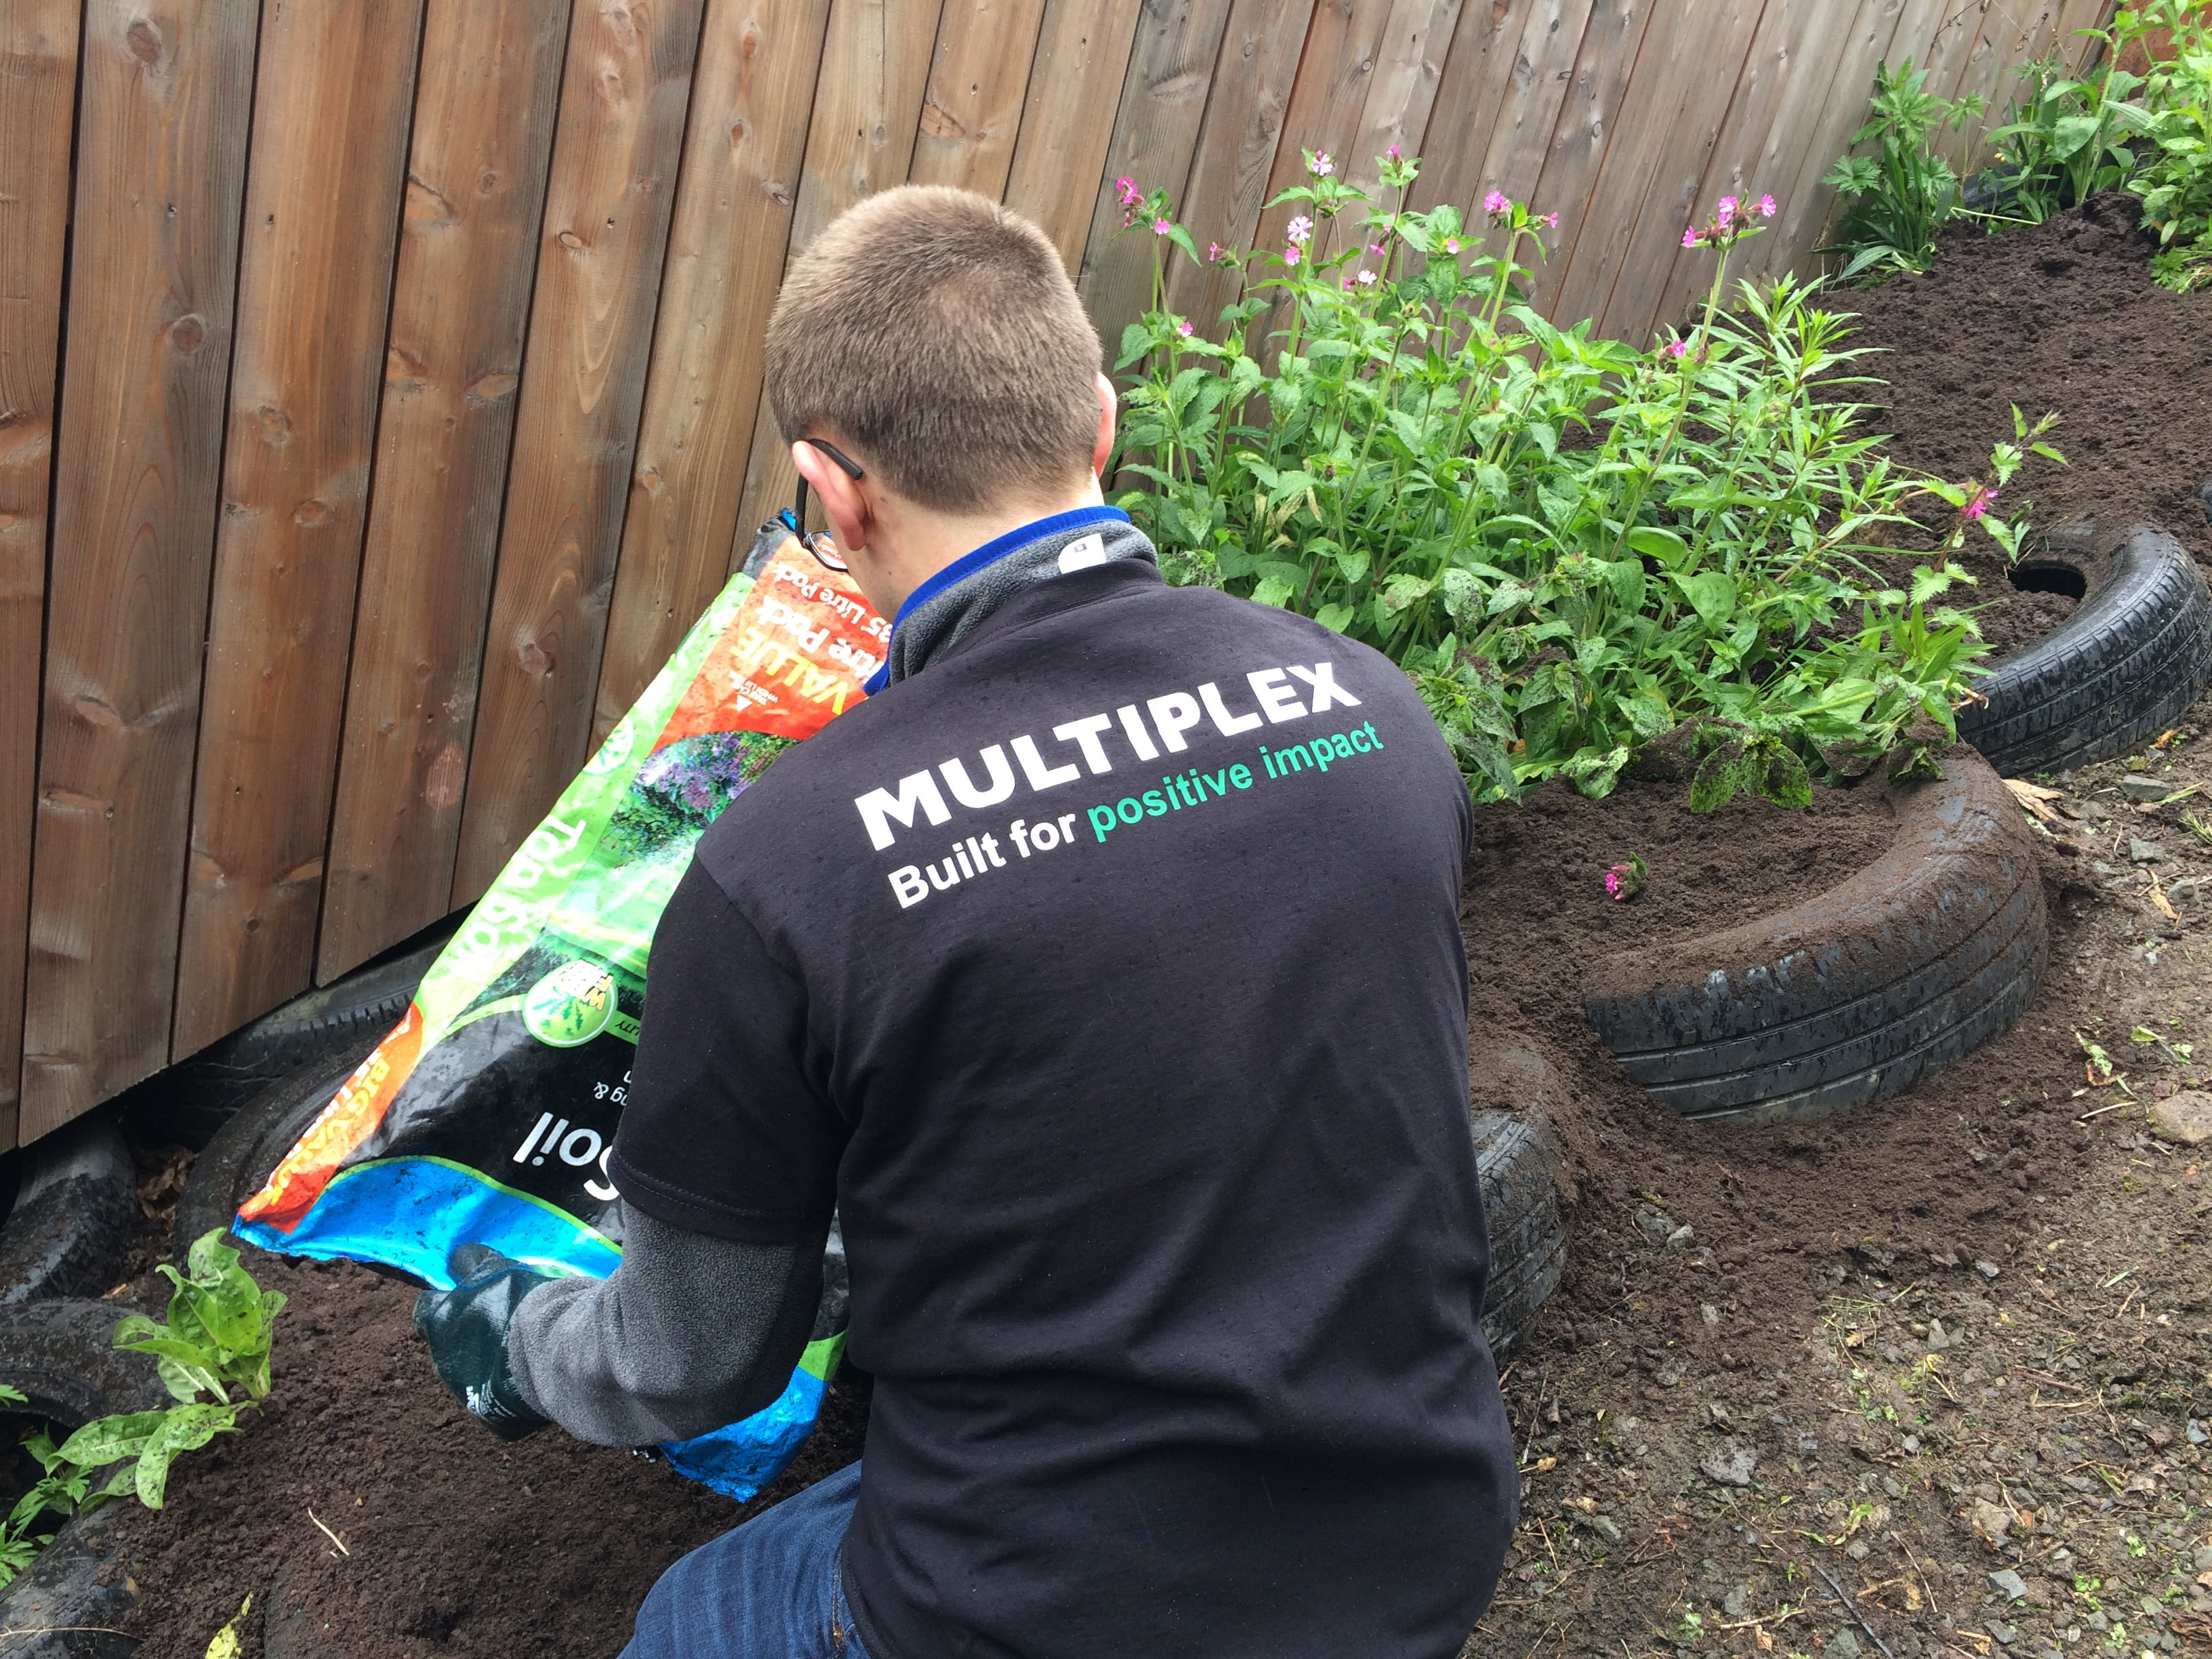 Multiplex team volunteer at Woodlands Community Garden